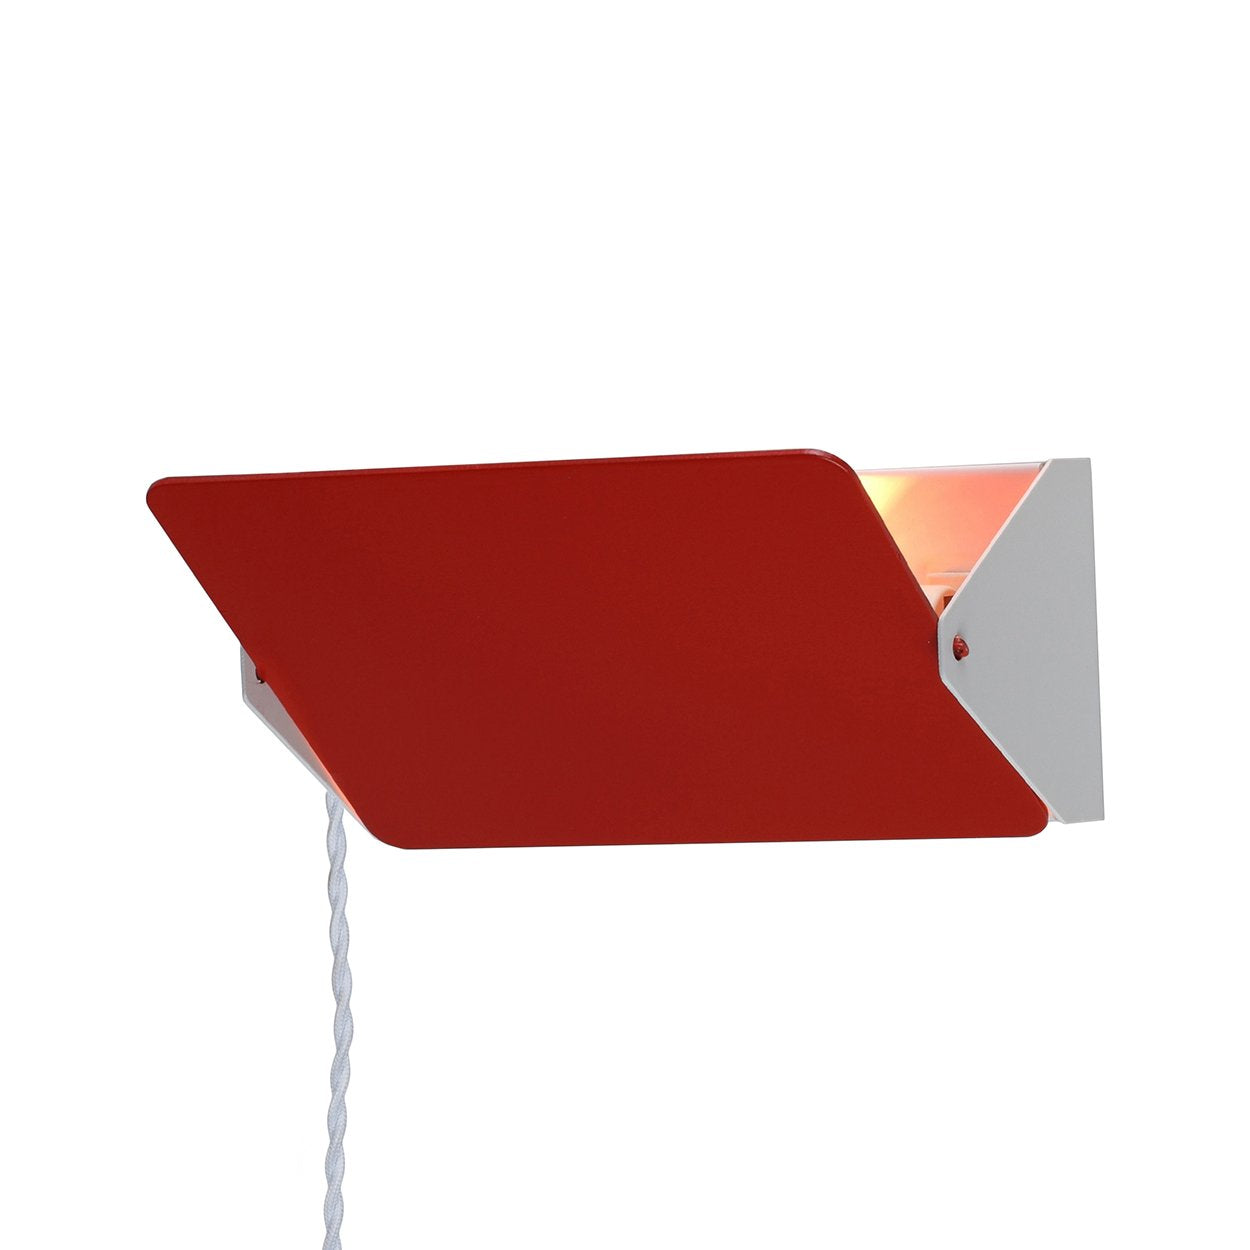 [LBW024RED] Elin red wall sconce